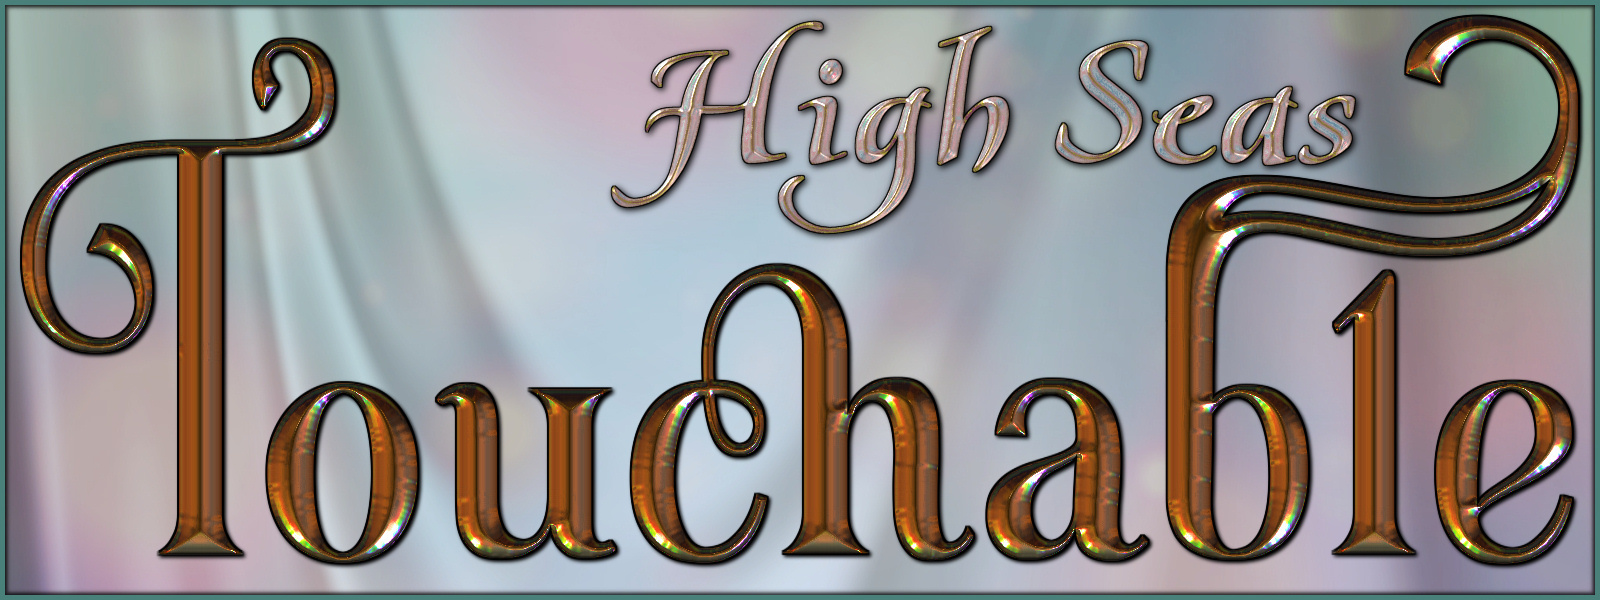 Touchable High Seas by -Wolfie-